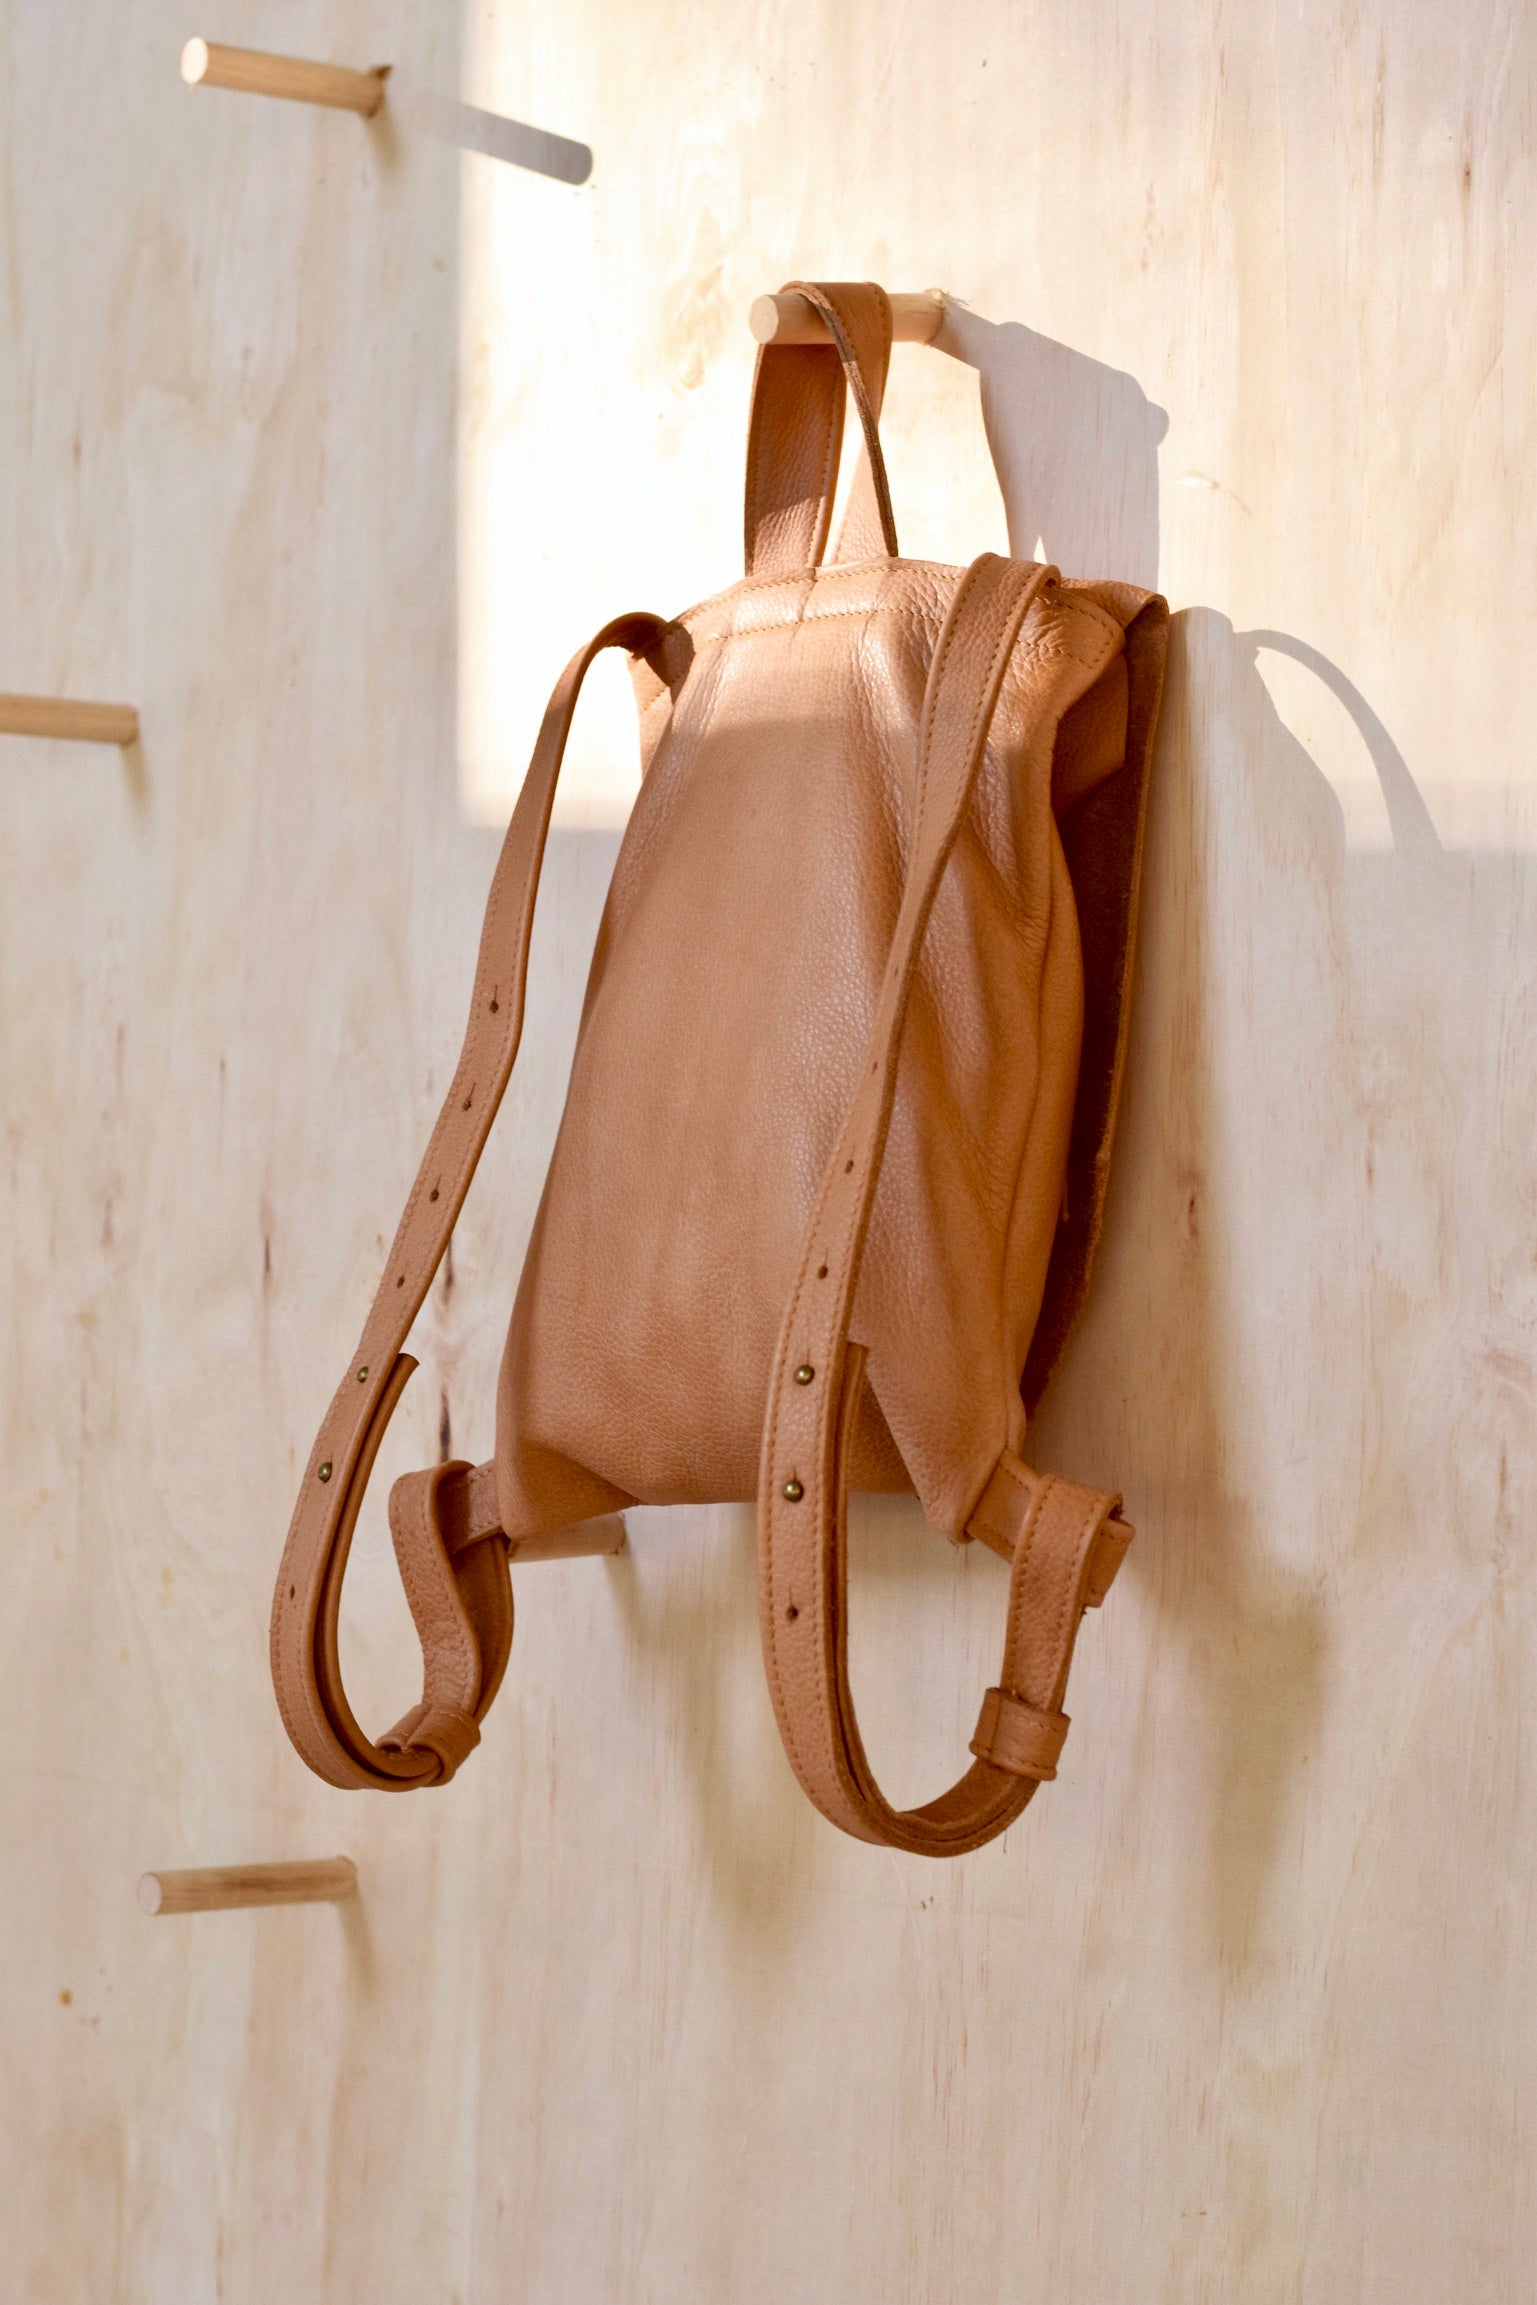 O OSLO - leather backpack with hook strap - saddle tan